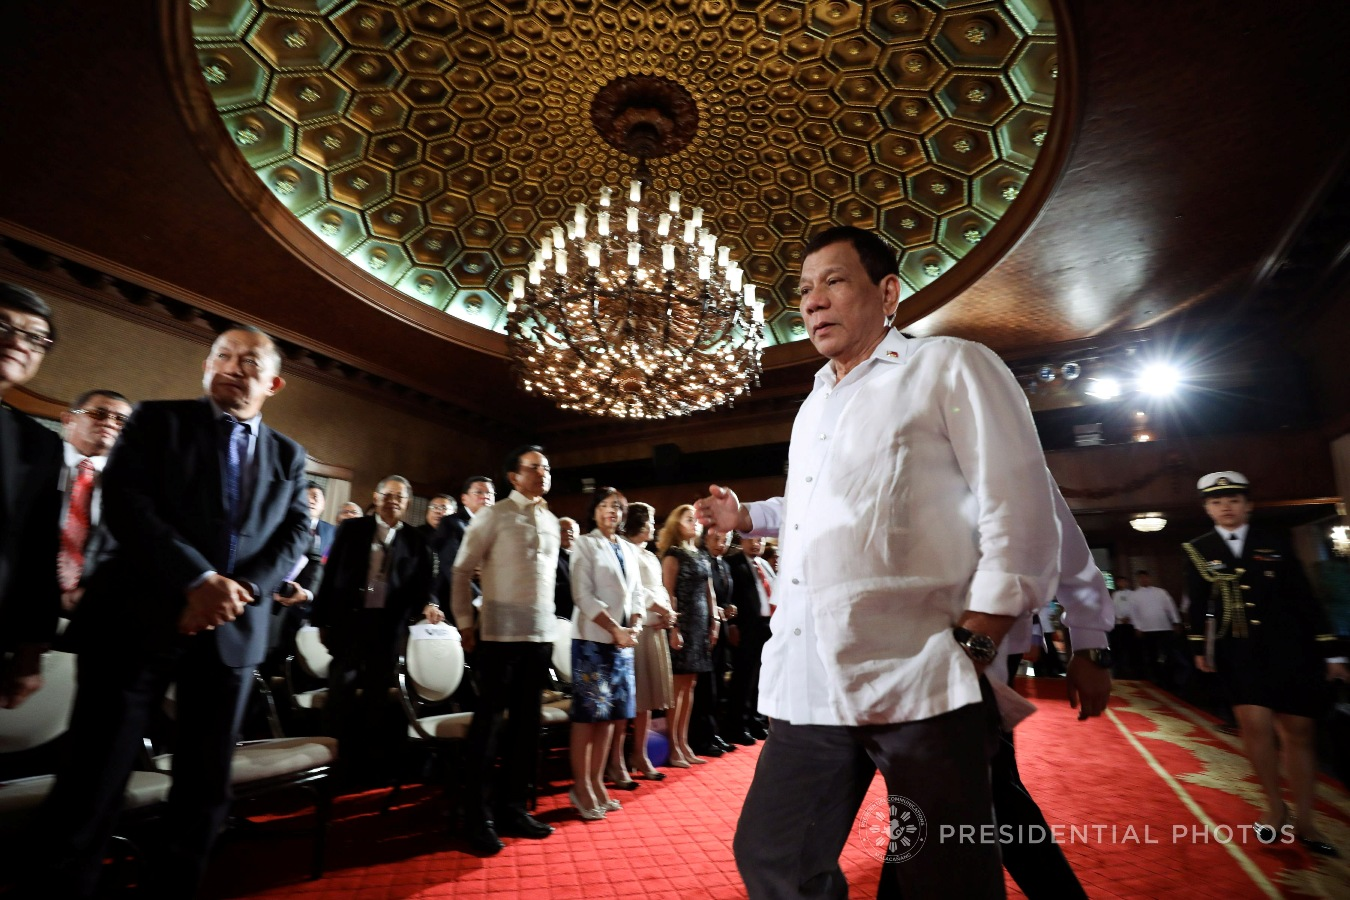 President Rodrigo Roa Duterte arrives at the Rizal Hall in Malacañan Palace as he graces the ASEAN Law Association (ALA) Governing Council Commemorative Session and Concert Program on October 25, 2017. KARL NORMAN ALONZO/PRESIDENTIAL PHOTO